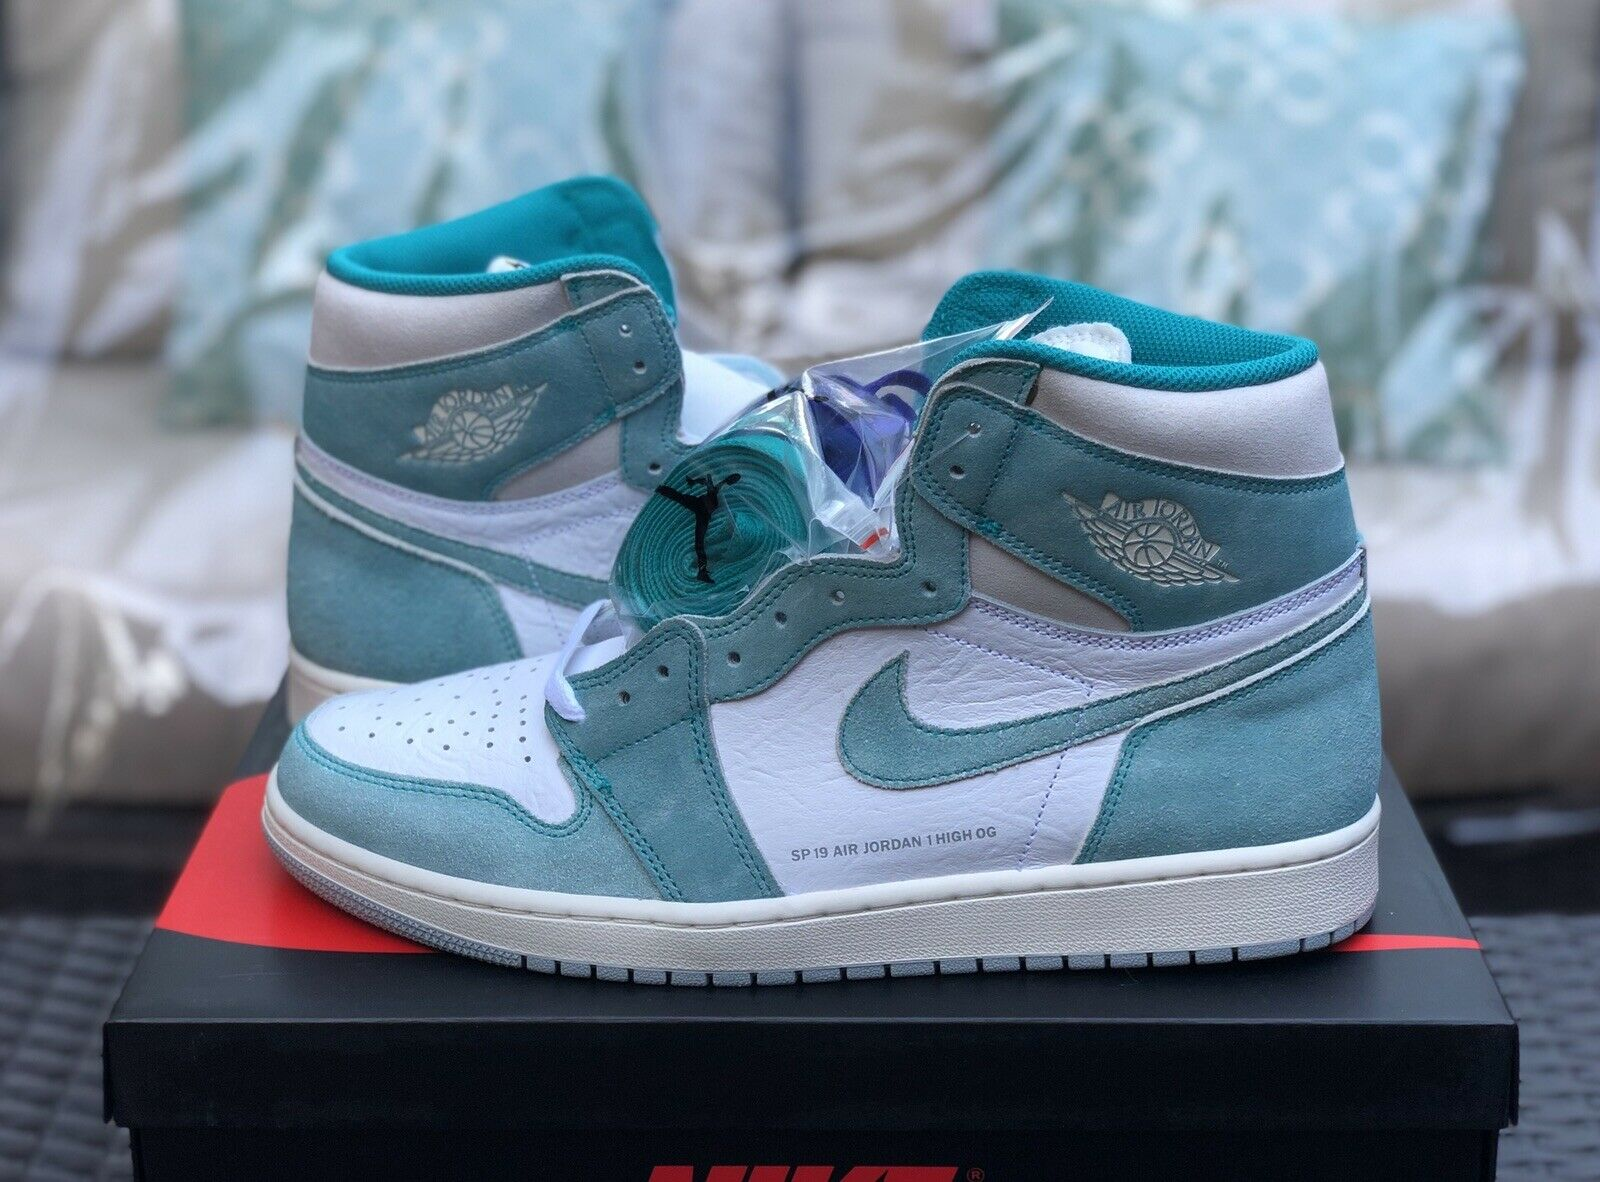 Nike Air Jordan 1 Retro High OG Turbo Green Size 12.5 Ships Same Day